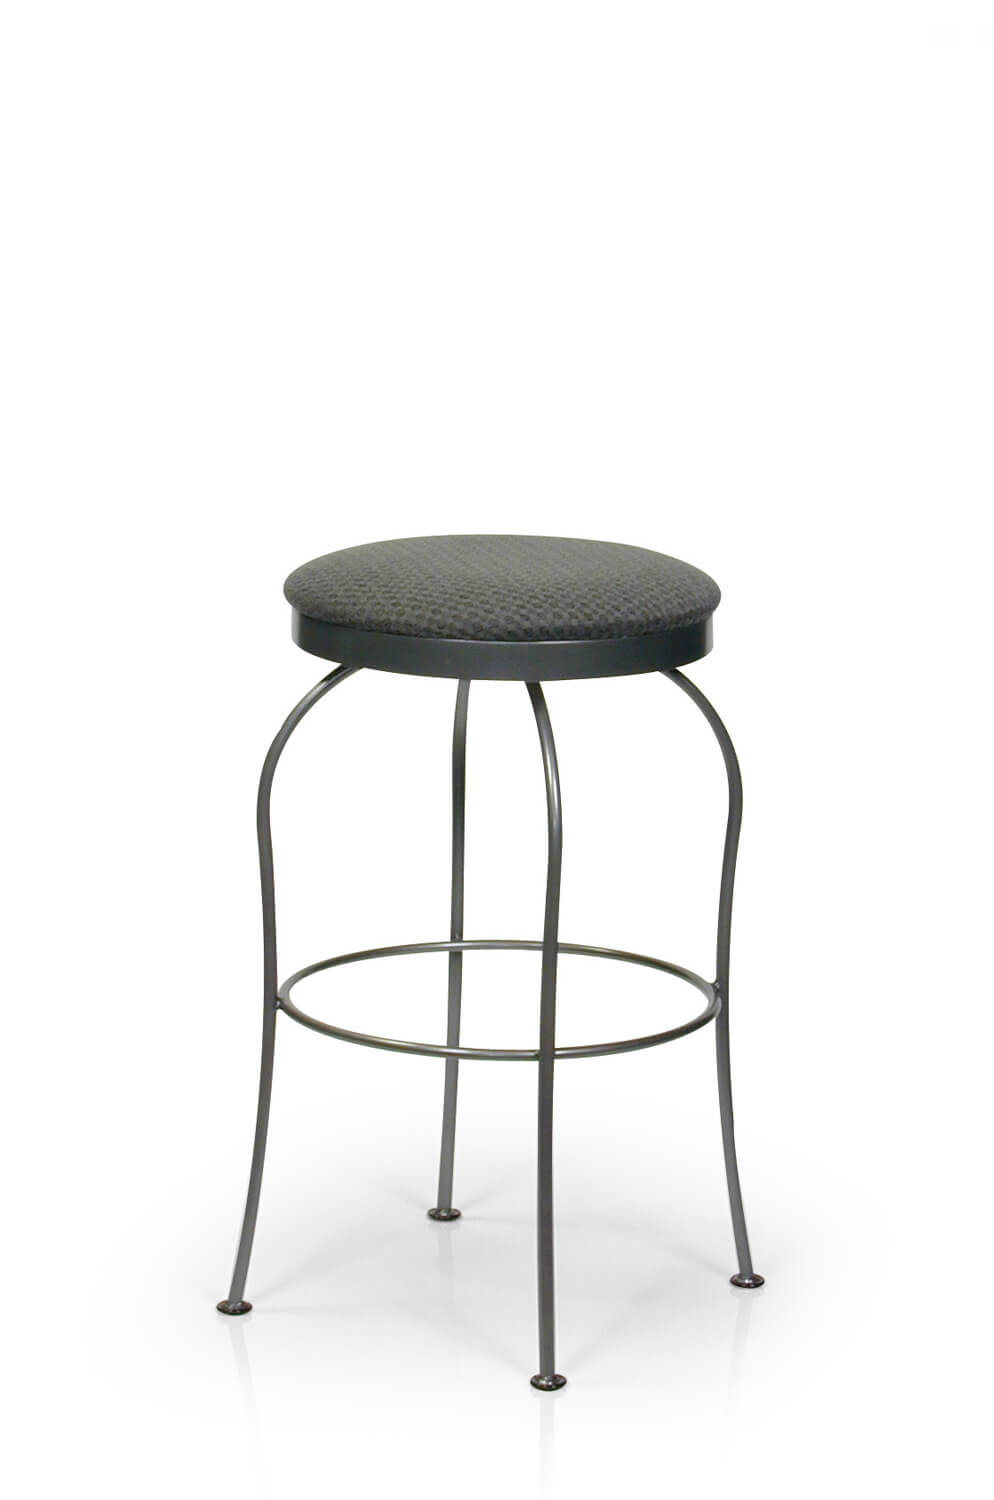 Buy Trica S Kim Backless Swivel Bar Stool Free Shipping